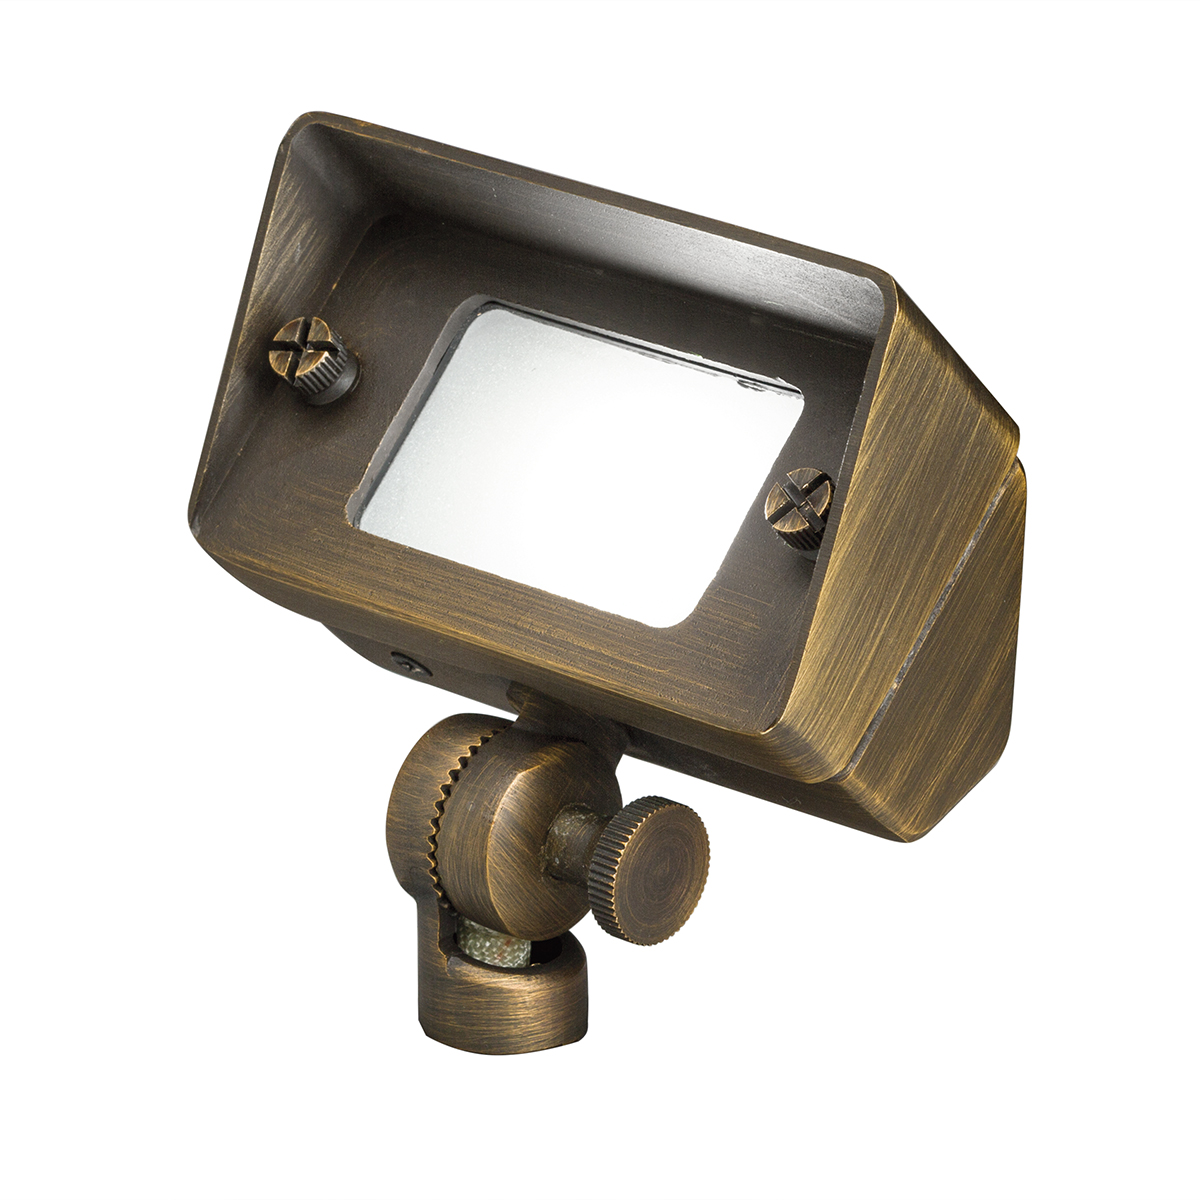 Kichler 15476CBR 12V Brass Flood/Wall Wash in Centennial Brass